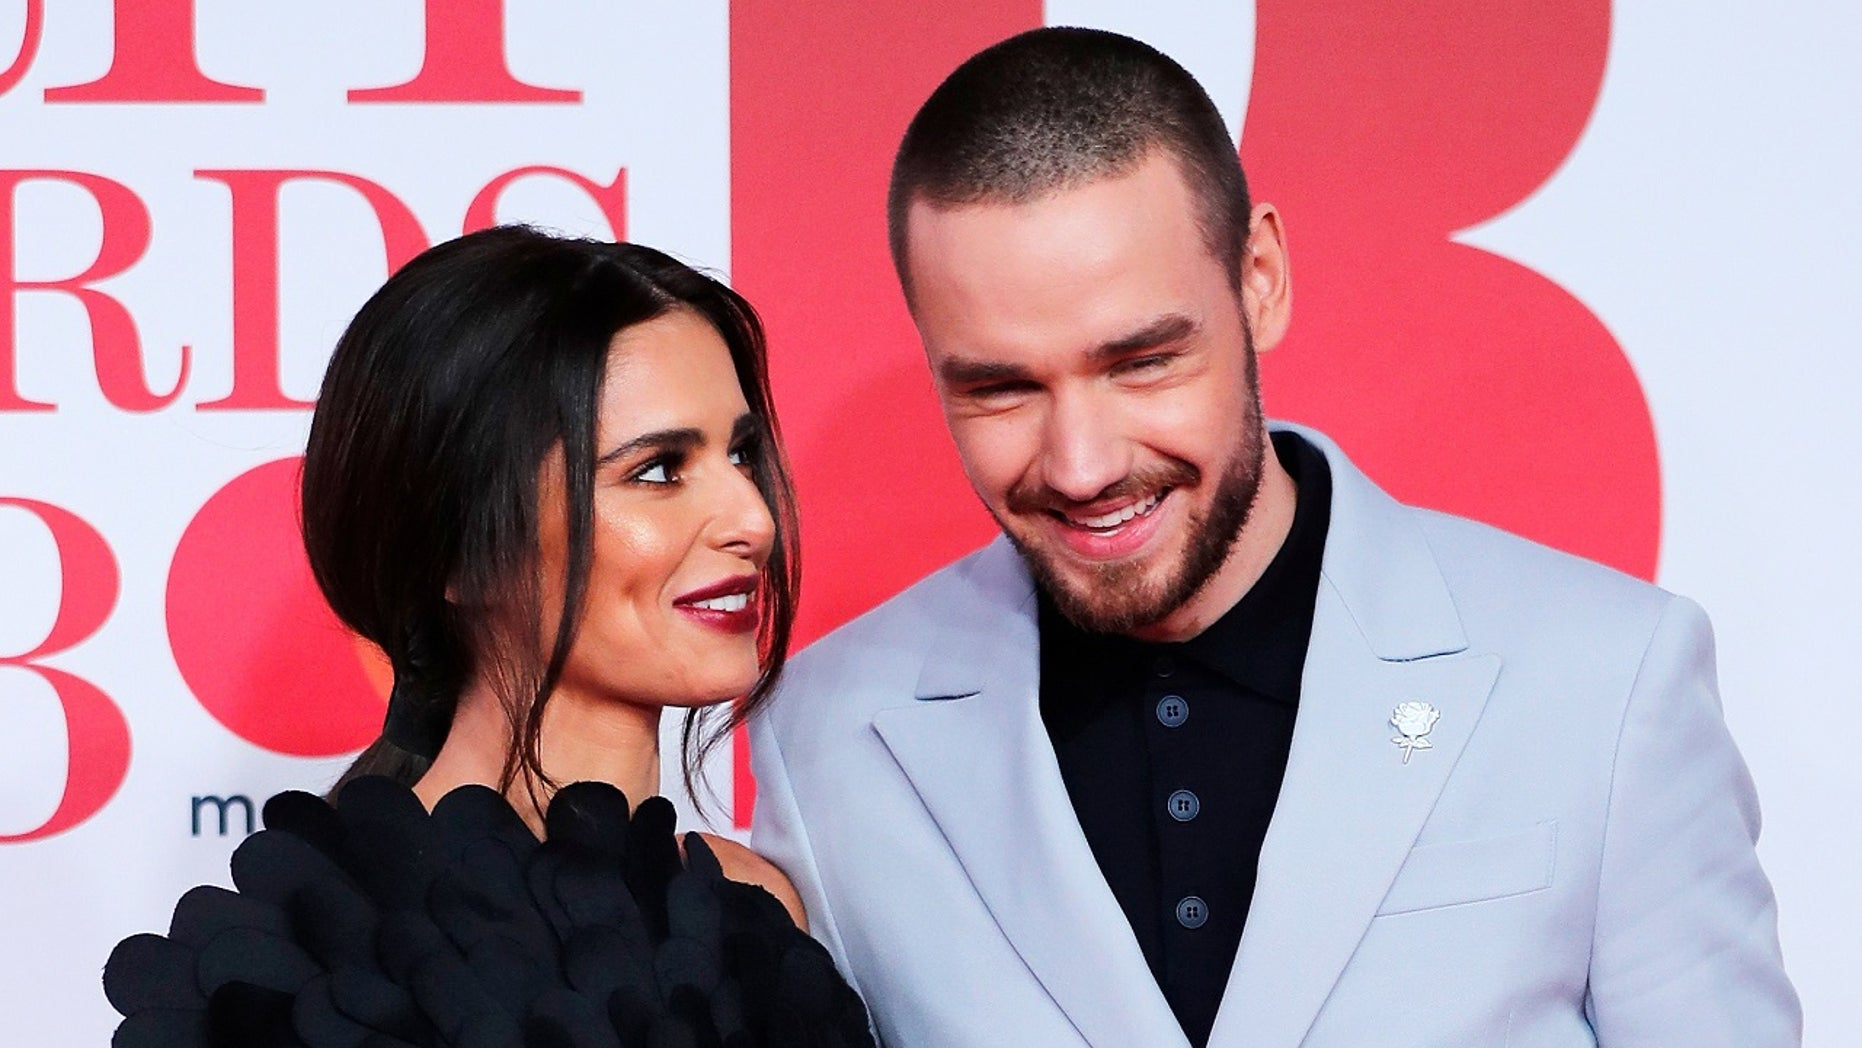 Cheryl and One Direction band member Liam Payne are parents to one-year-old Bear.